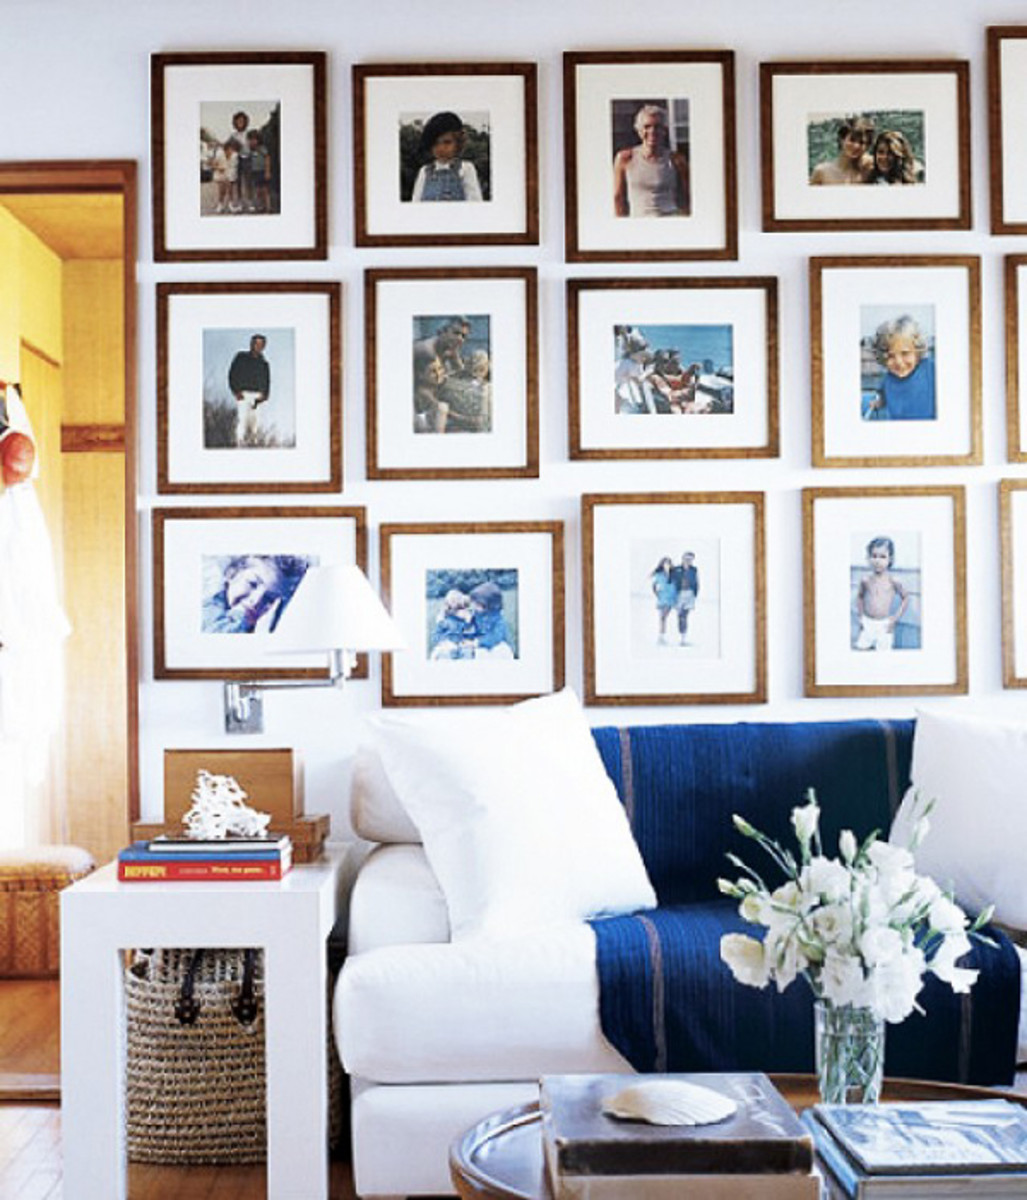 Creating a vintage family gallery can span from previous decades to more recent images.